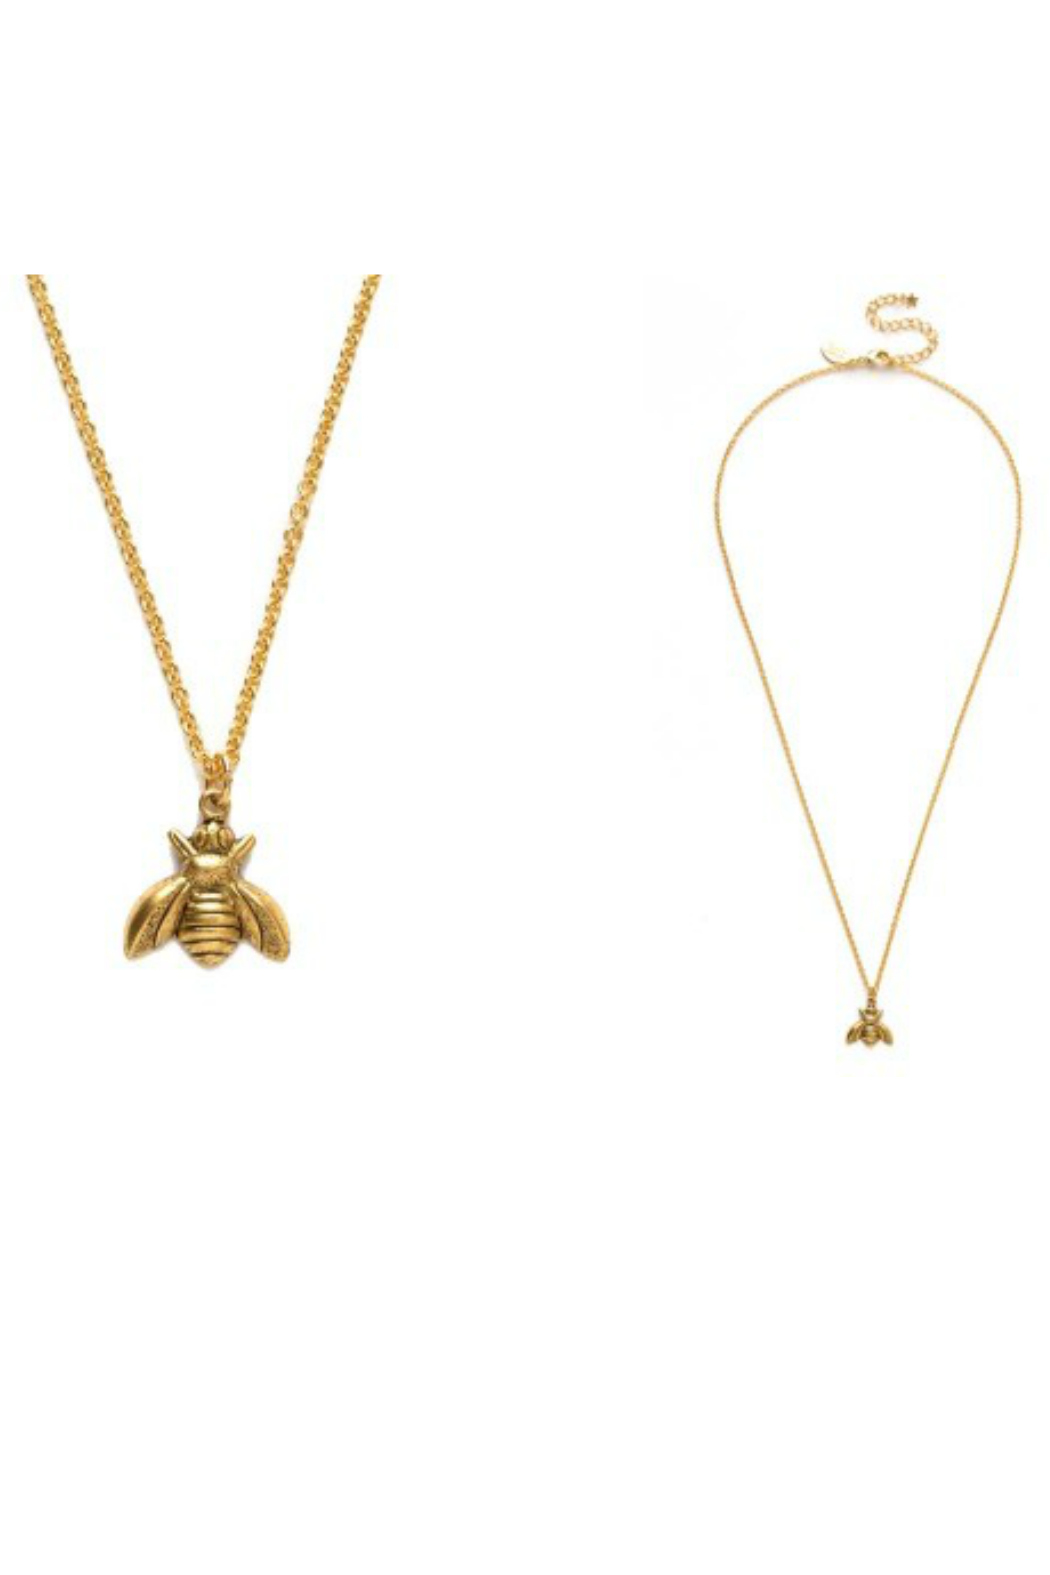 Amano Trading GOLDEN HONEY BEE NECKLACE - Main Image